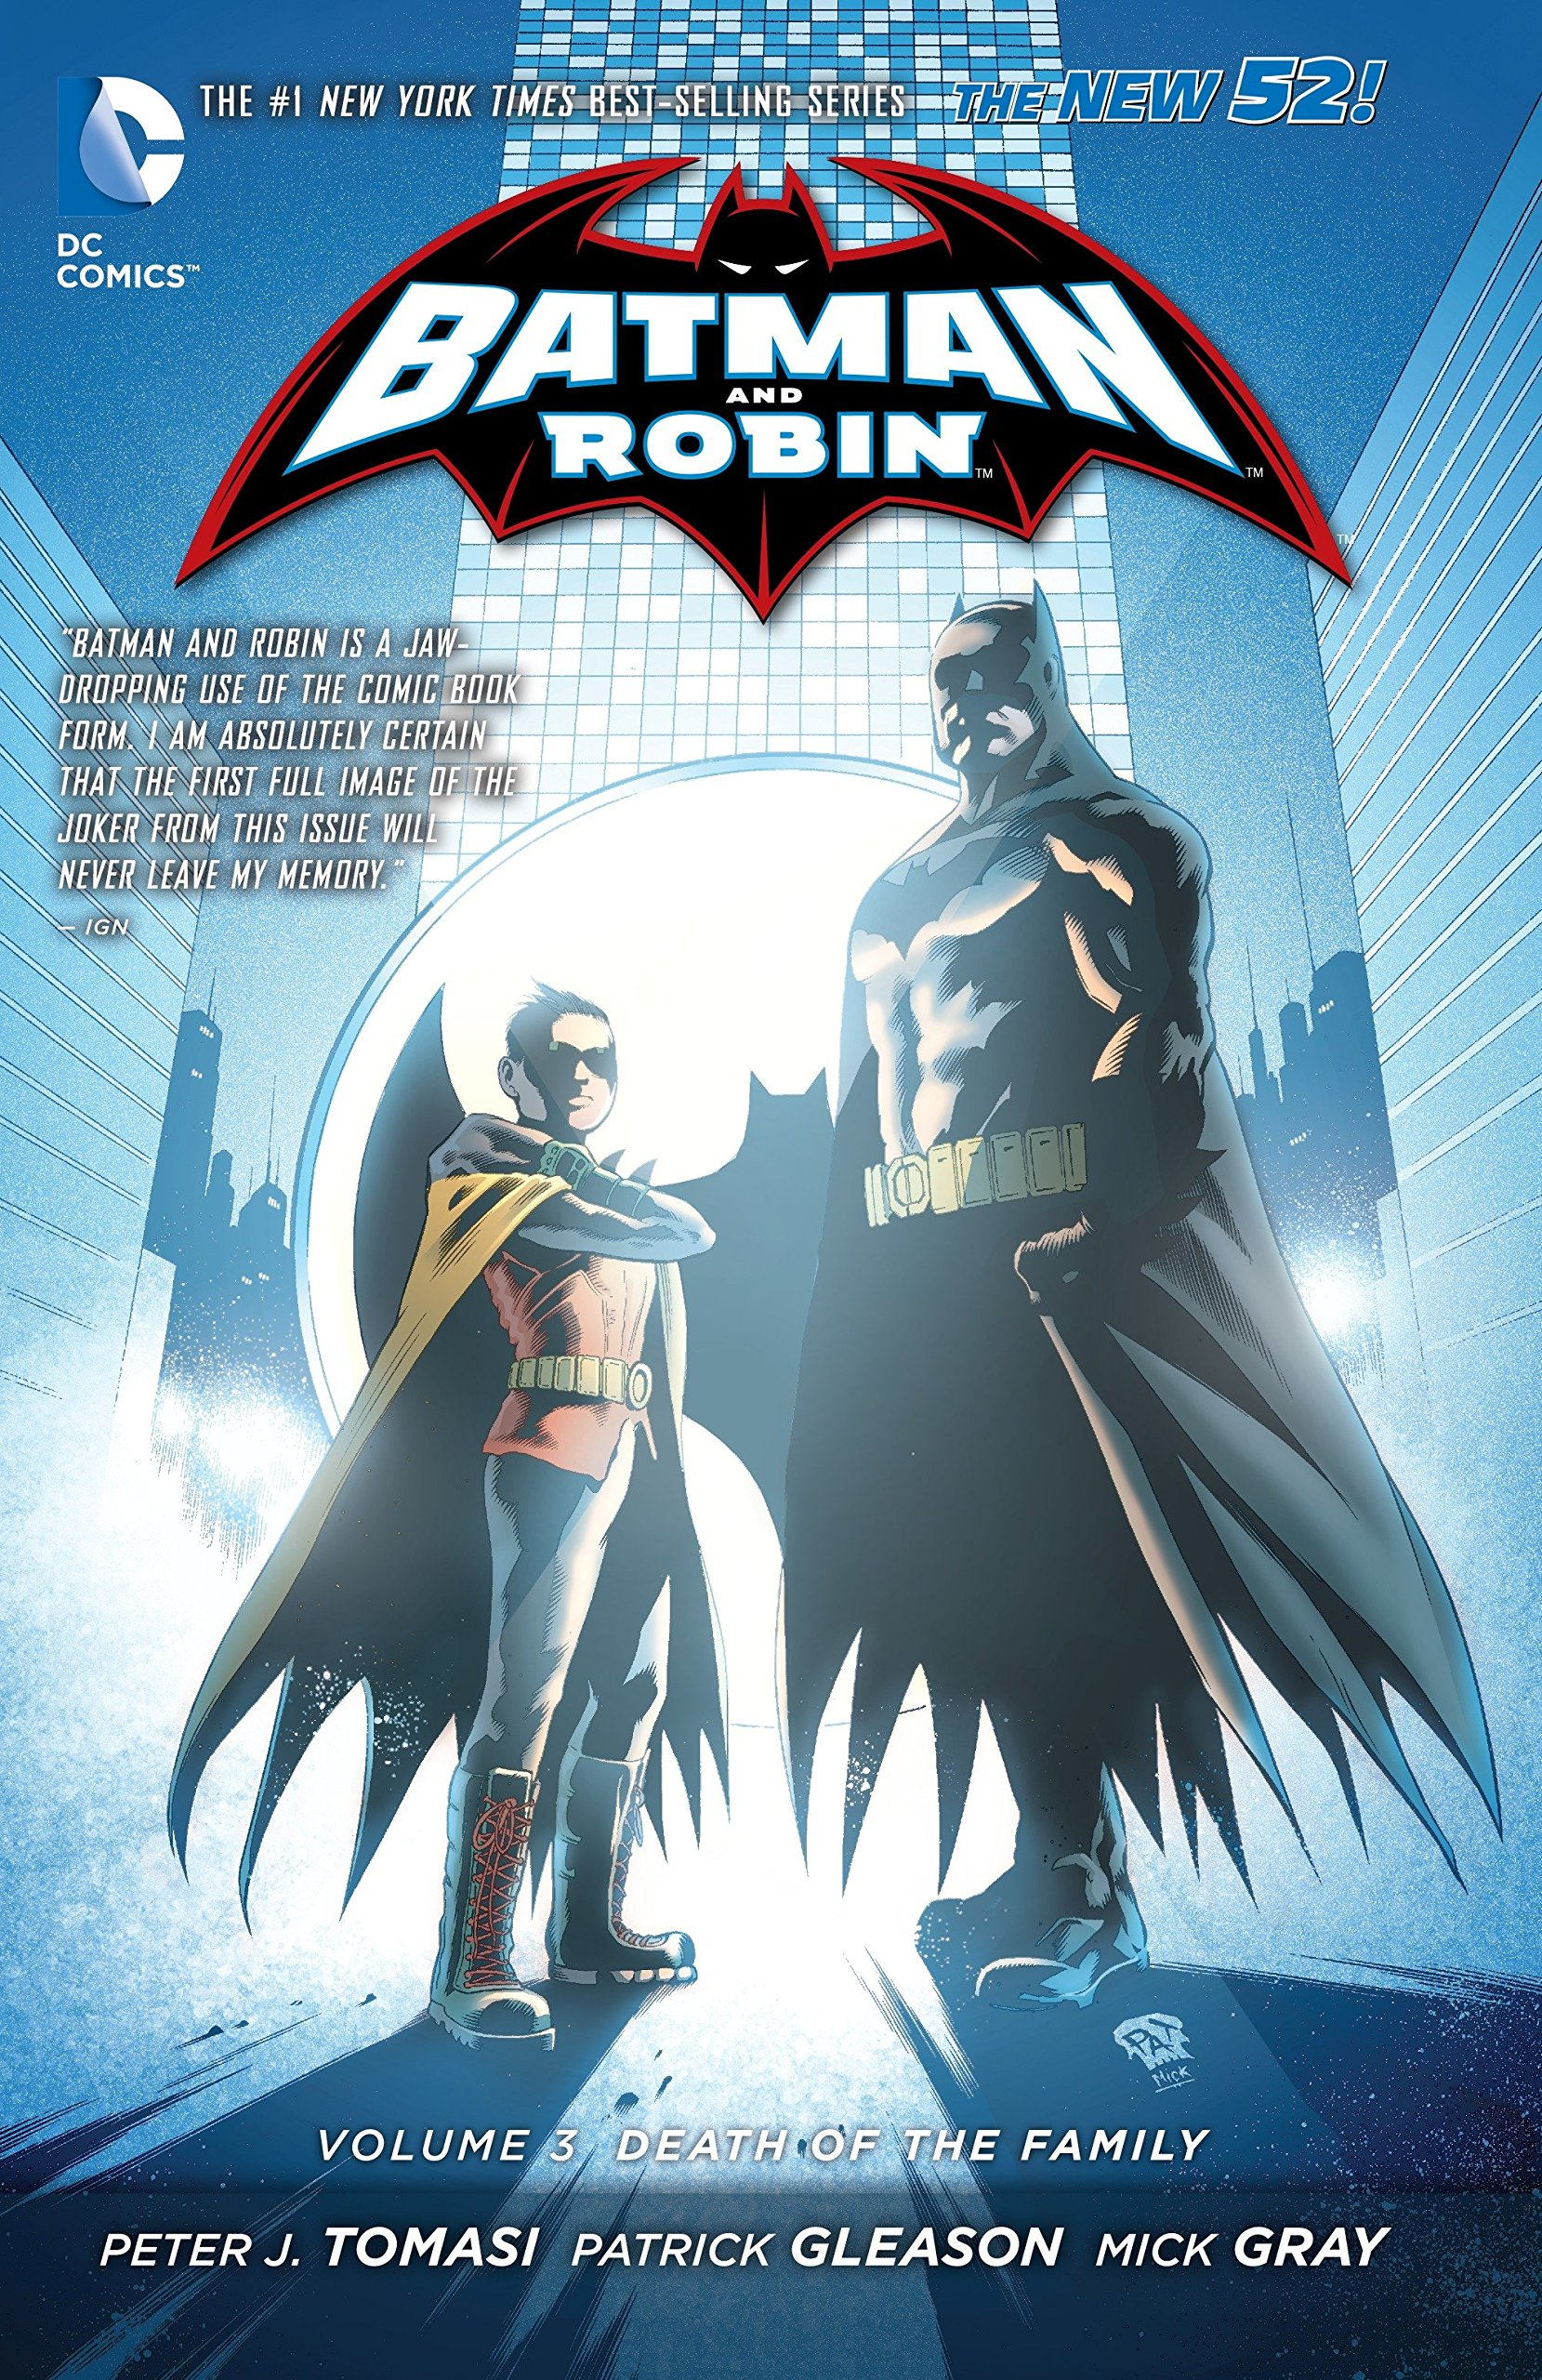 Batman And Robin Vol. 3  Death Of The Family  The New 52   Batman  The New 52